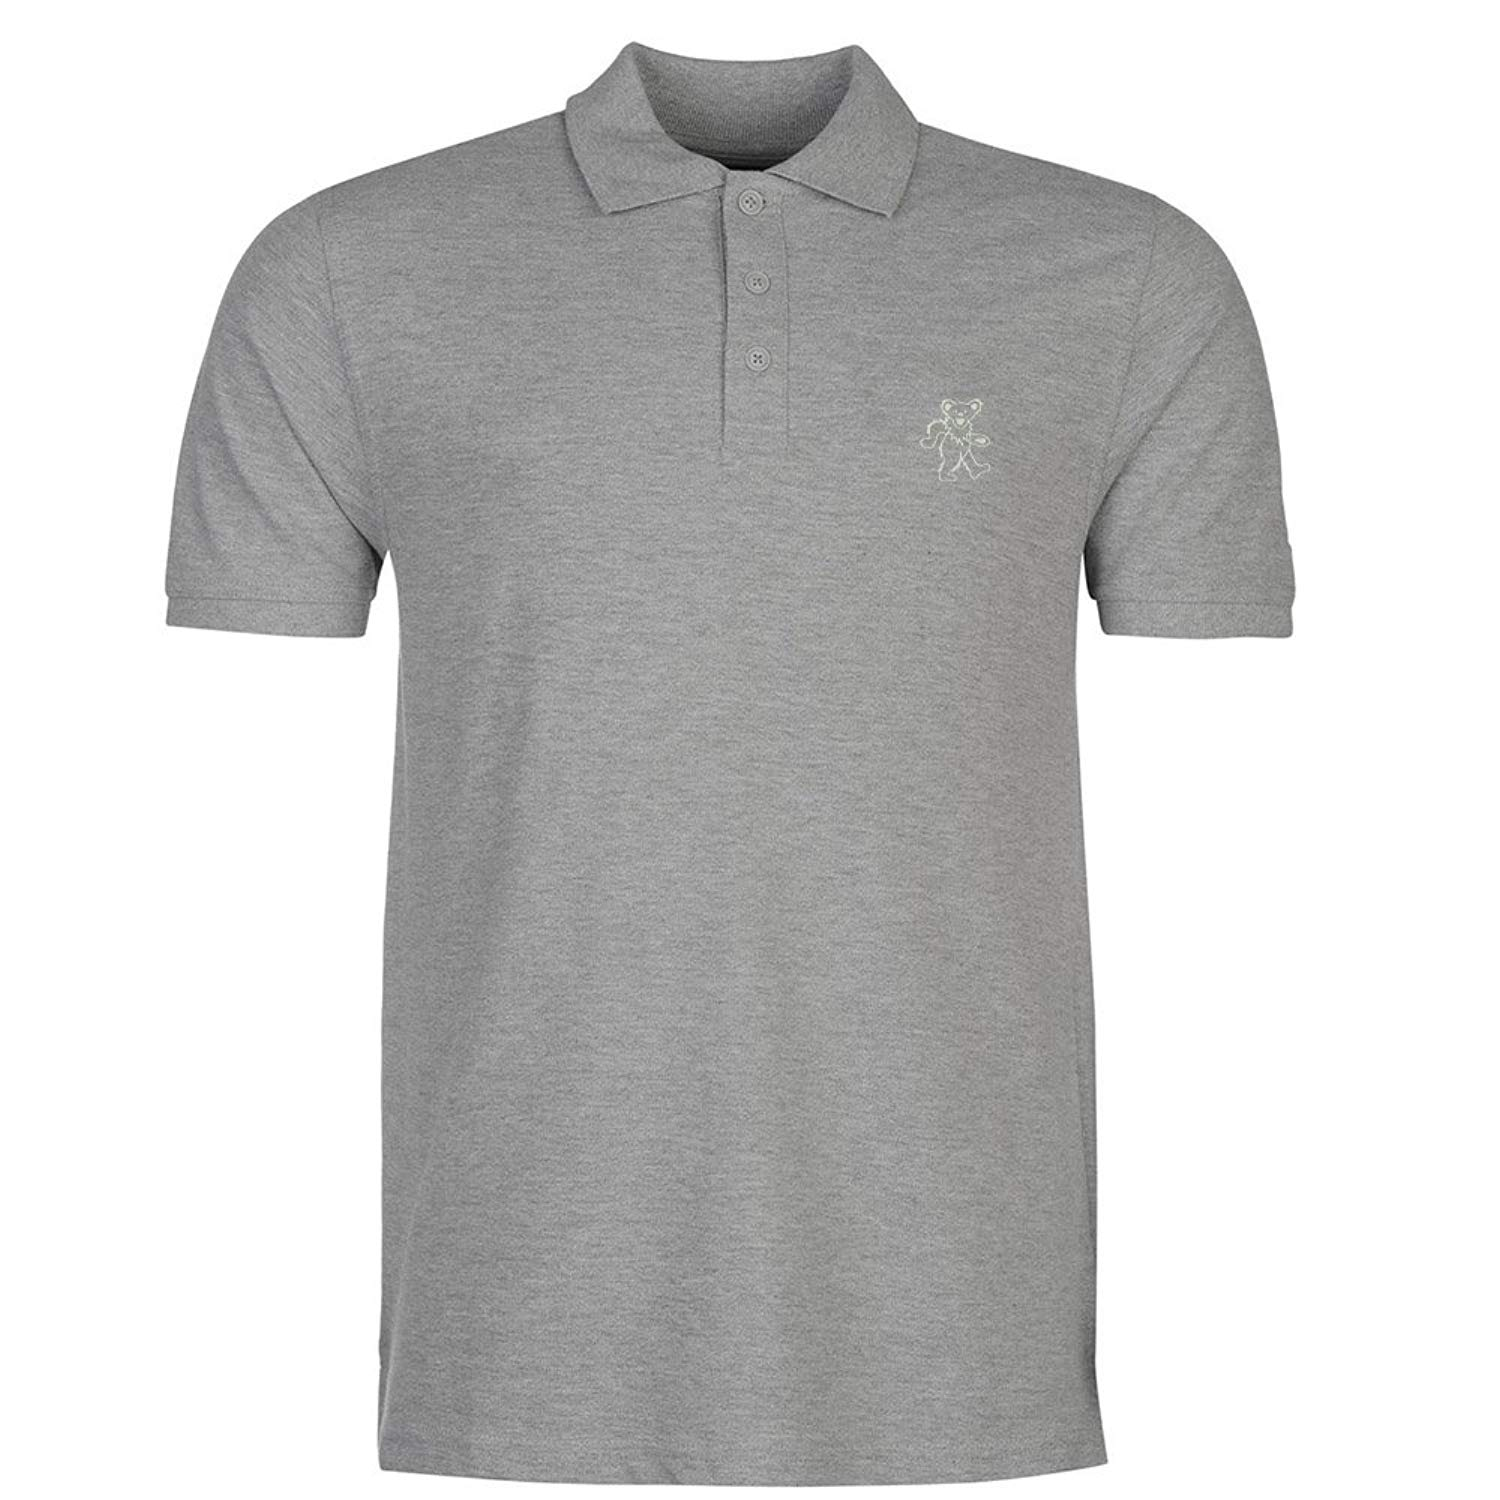 Cheap Embroidered Polo Shirts Find Embroidered Polo Shirts Deals On